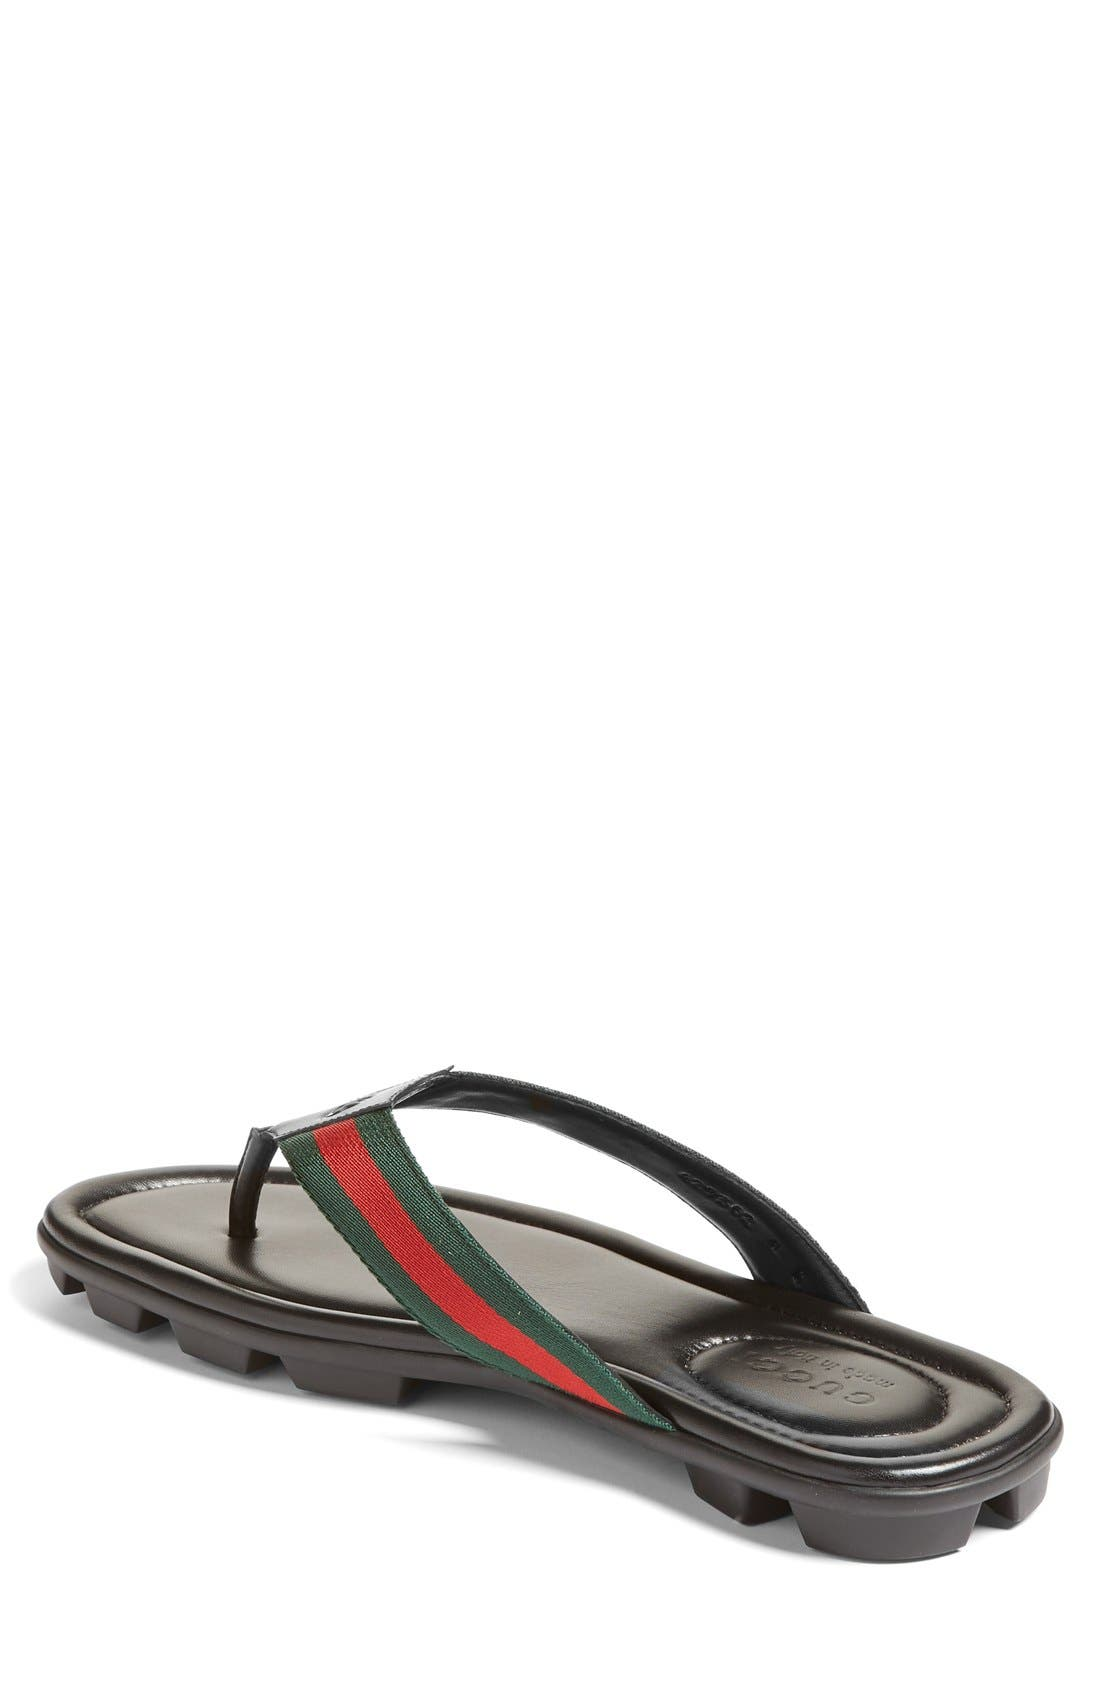 GUCCI, Titan Flip Flop, Alternate thumbnail 6, color, NERO LEATHER